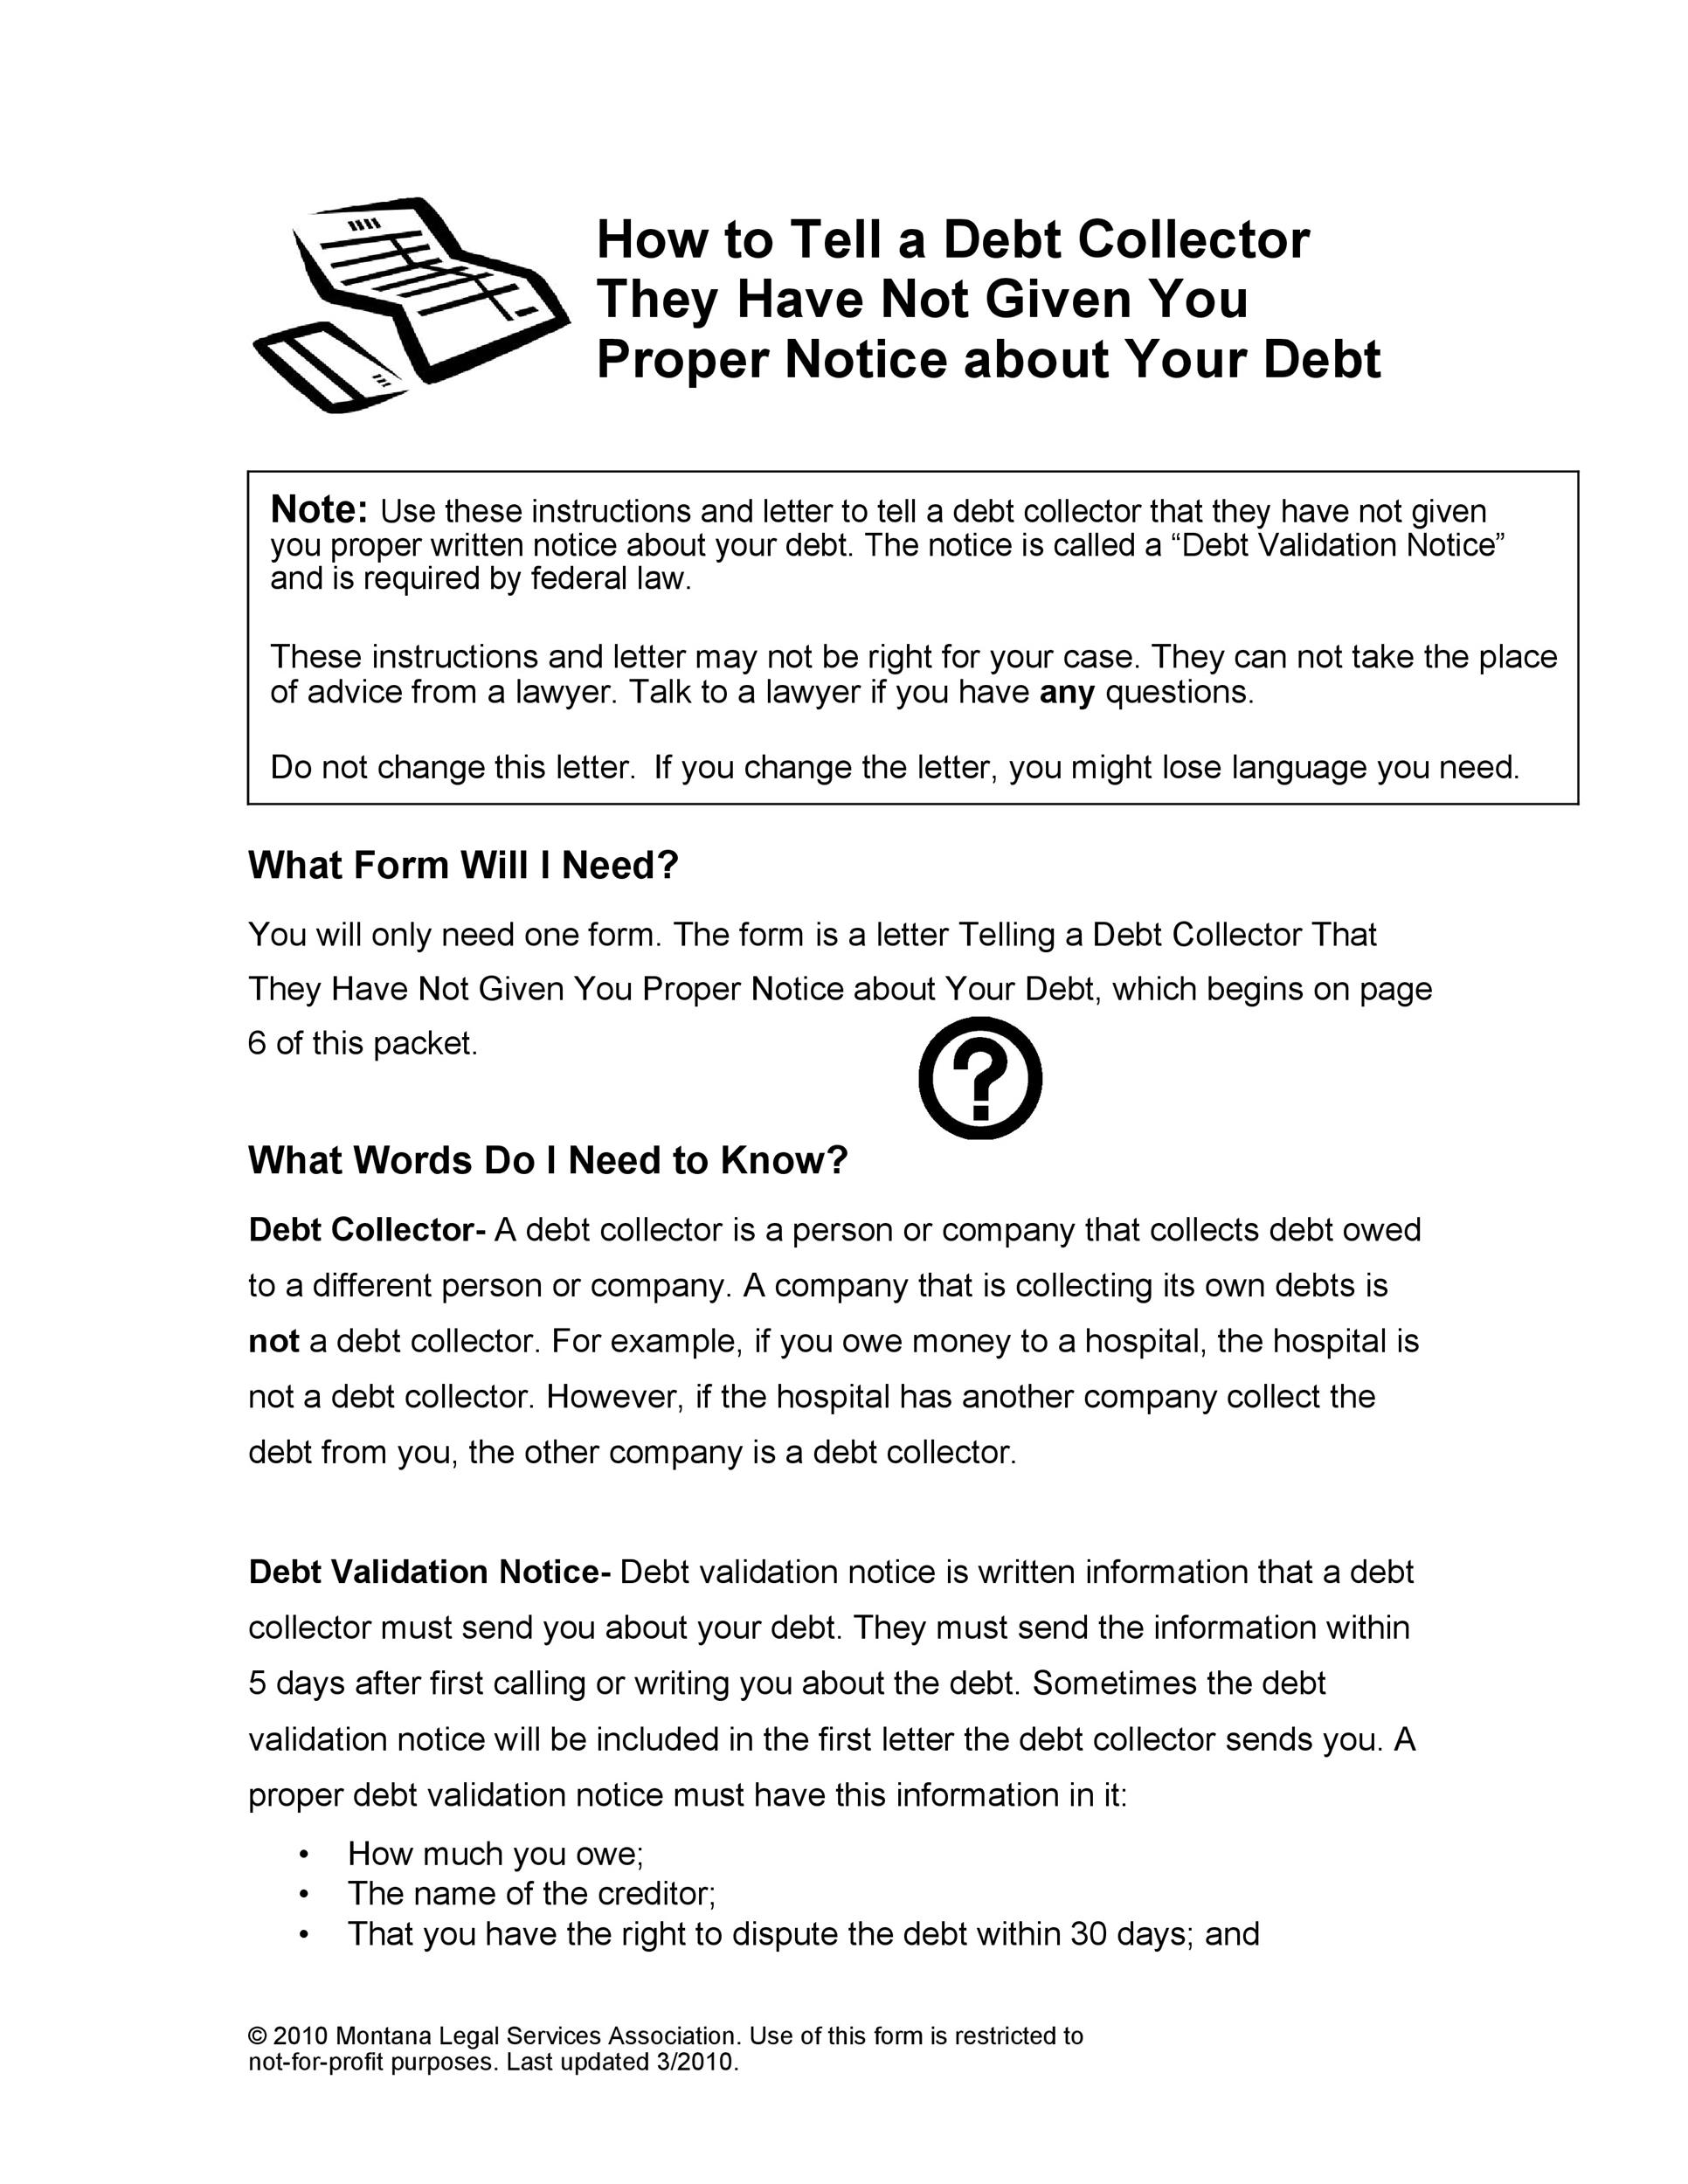 Free debt validation letter 07